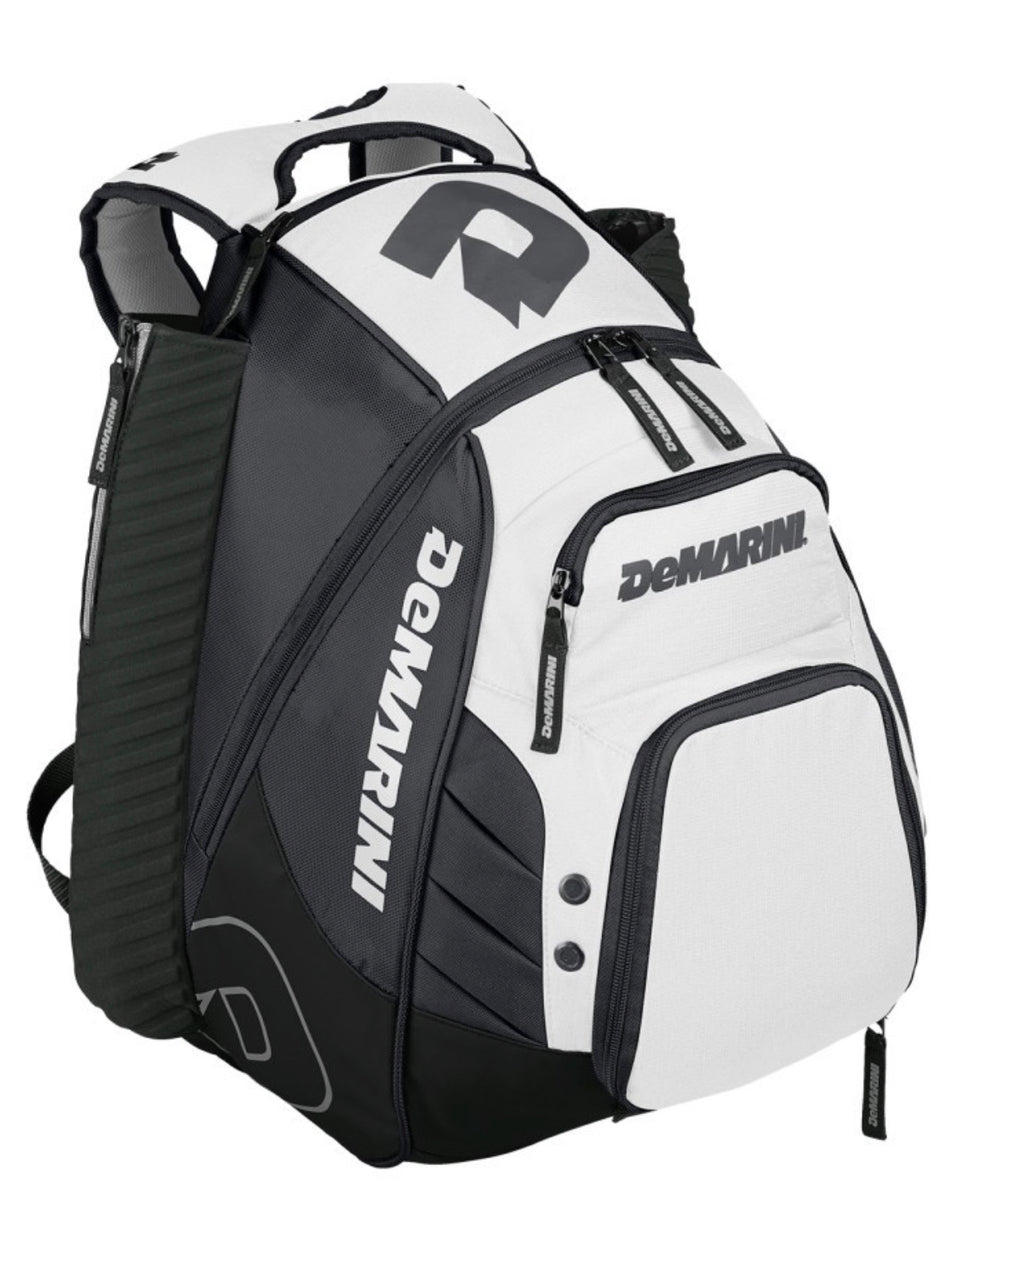 DeMARINI VOODOO REBIRTH BACKPACK - AtlanticCoastSports